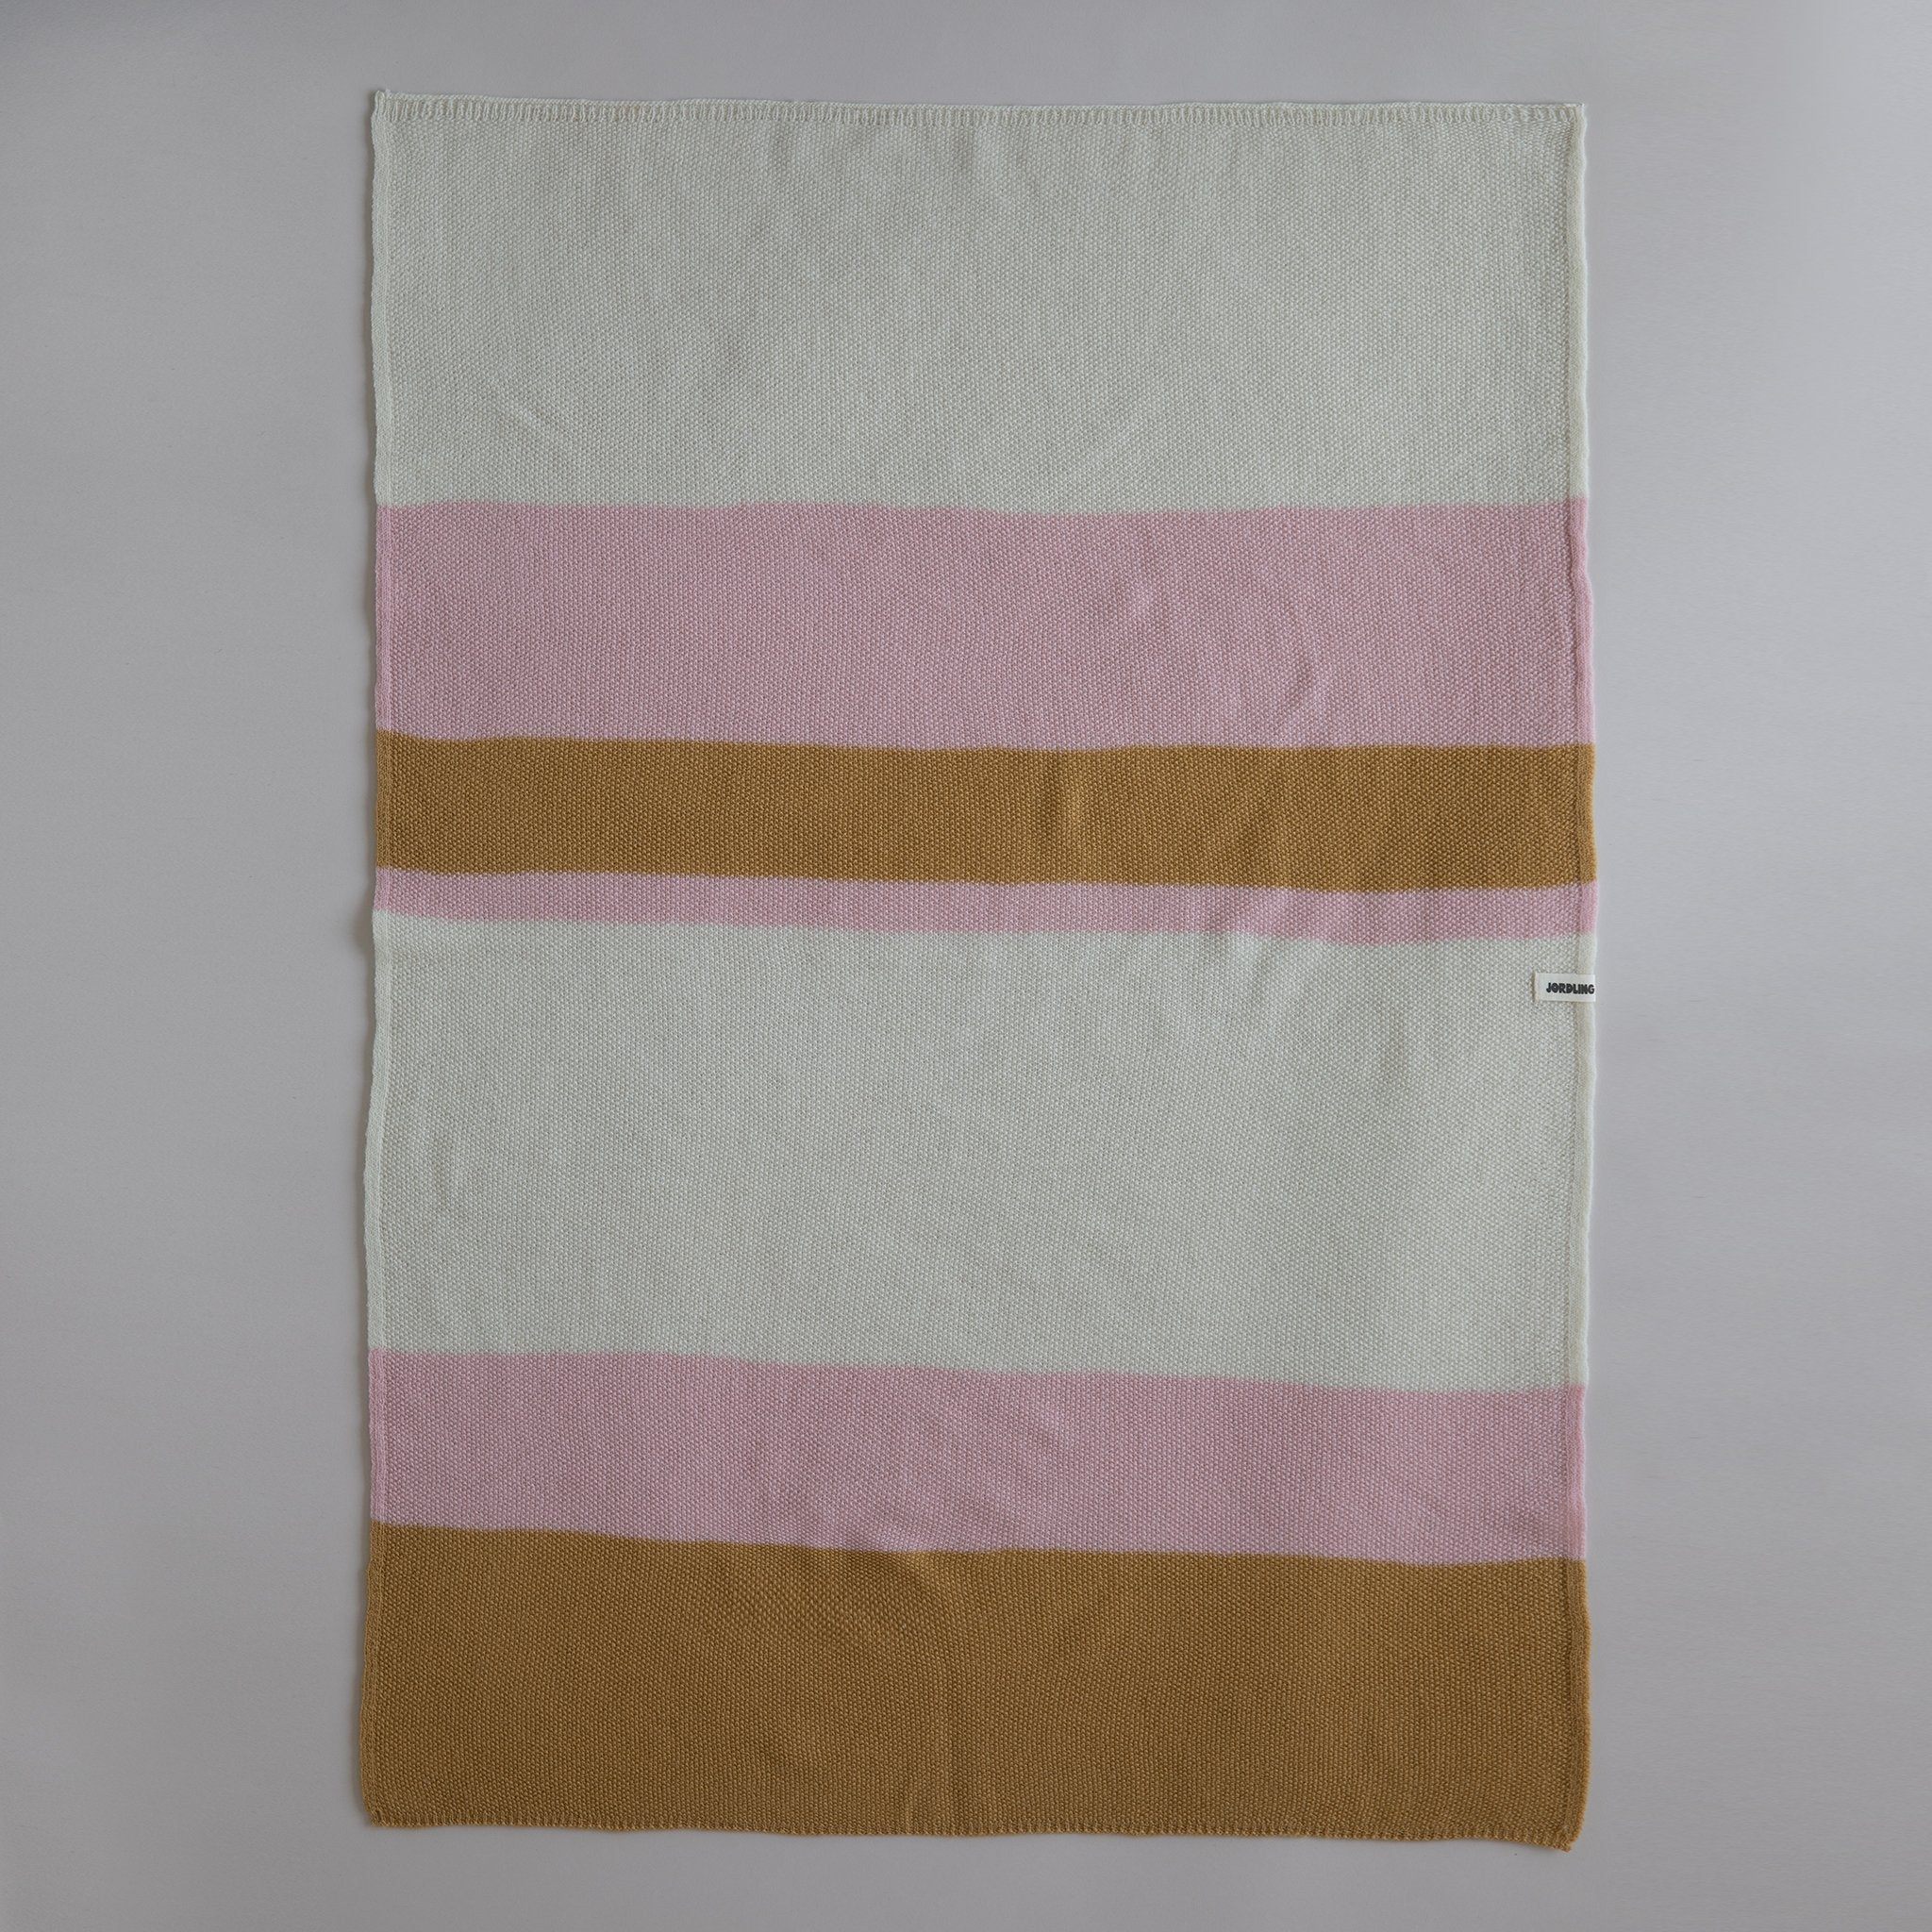 Ilon Wool Blanket, Pink Stripe